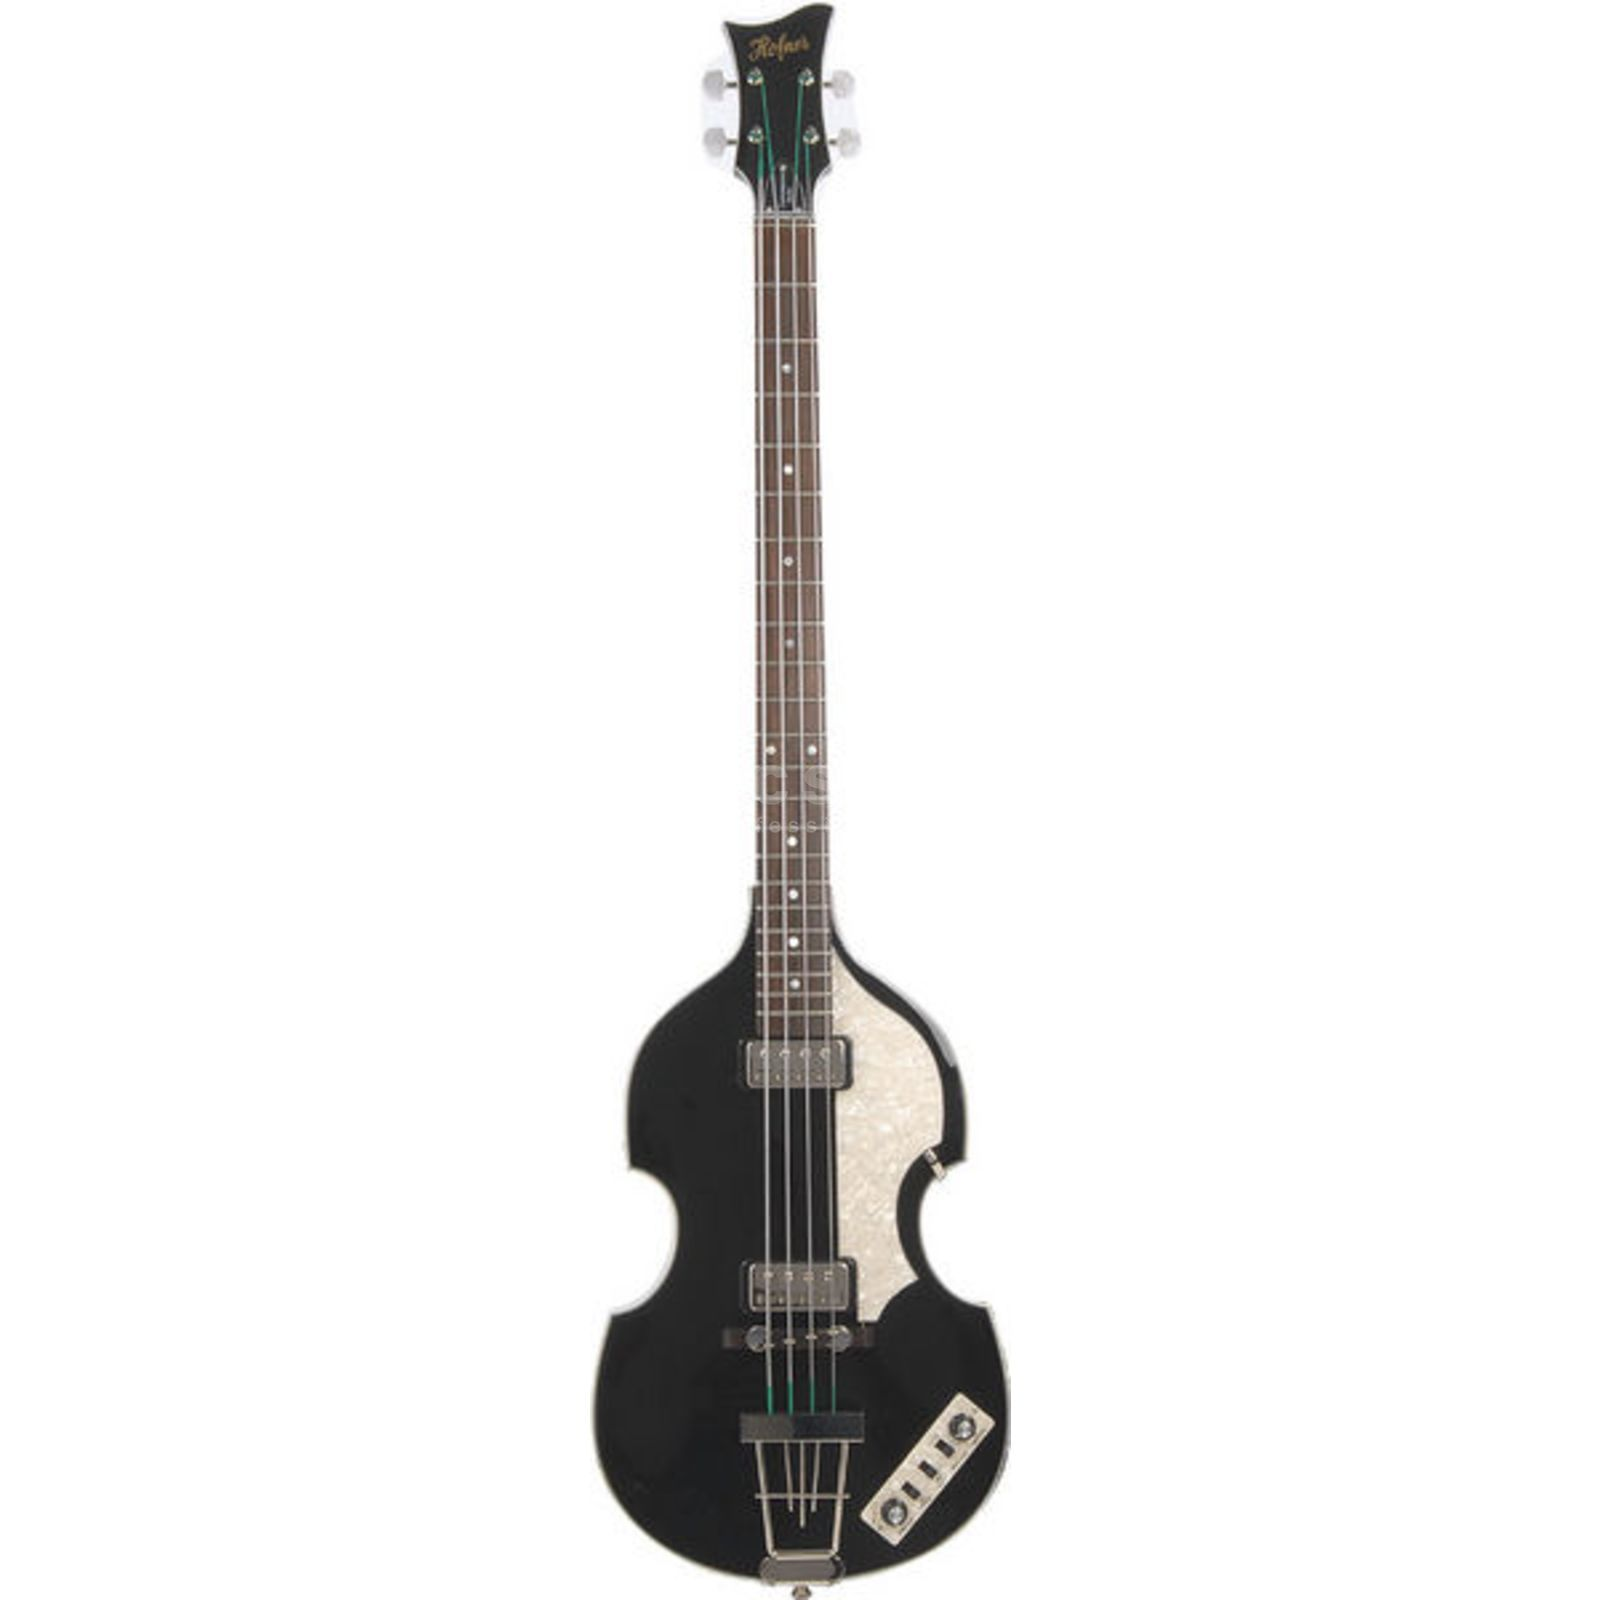 Höfner Contemporary Violin Bass Black HCT-500/1-BK B-Stock Изображение товара